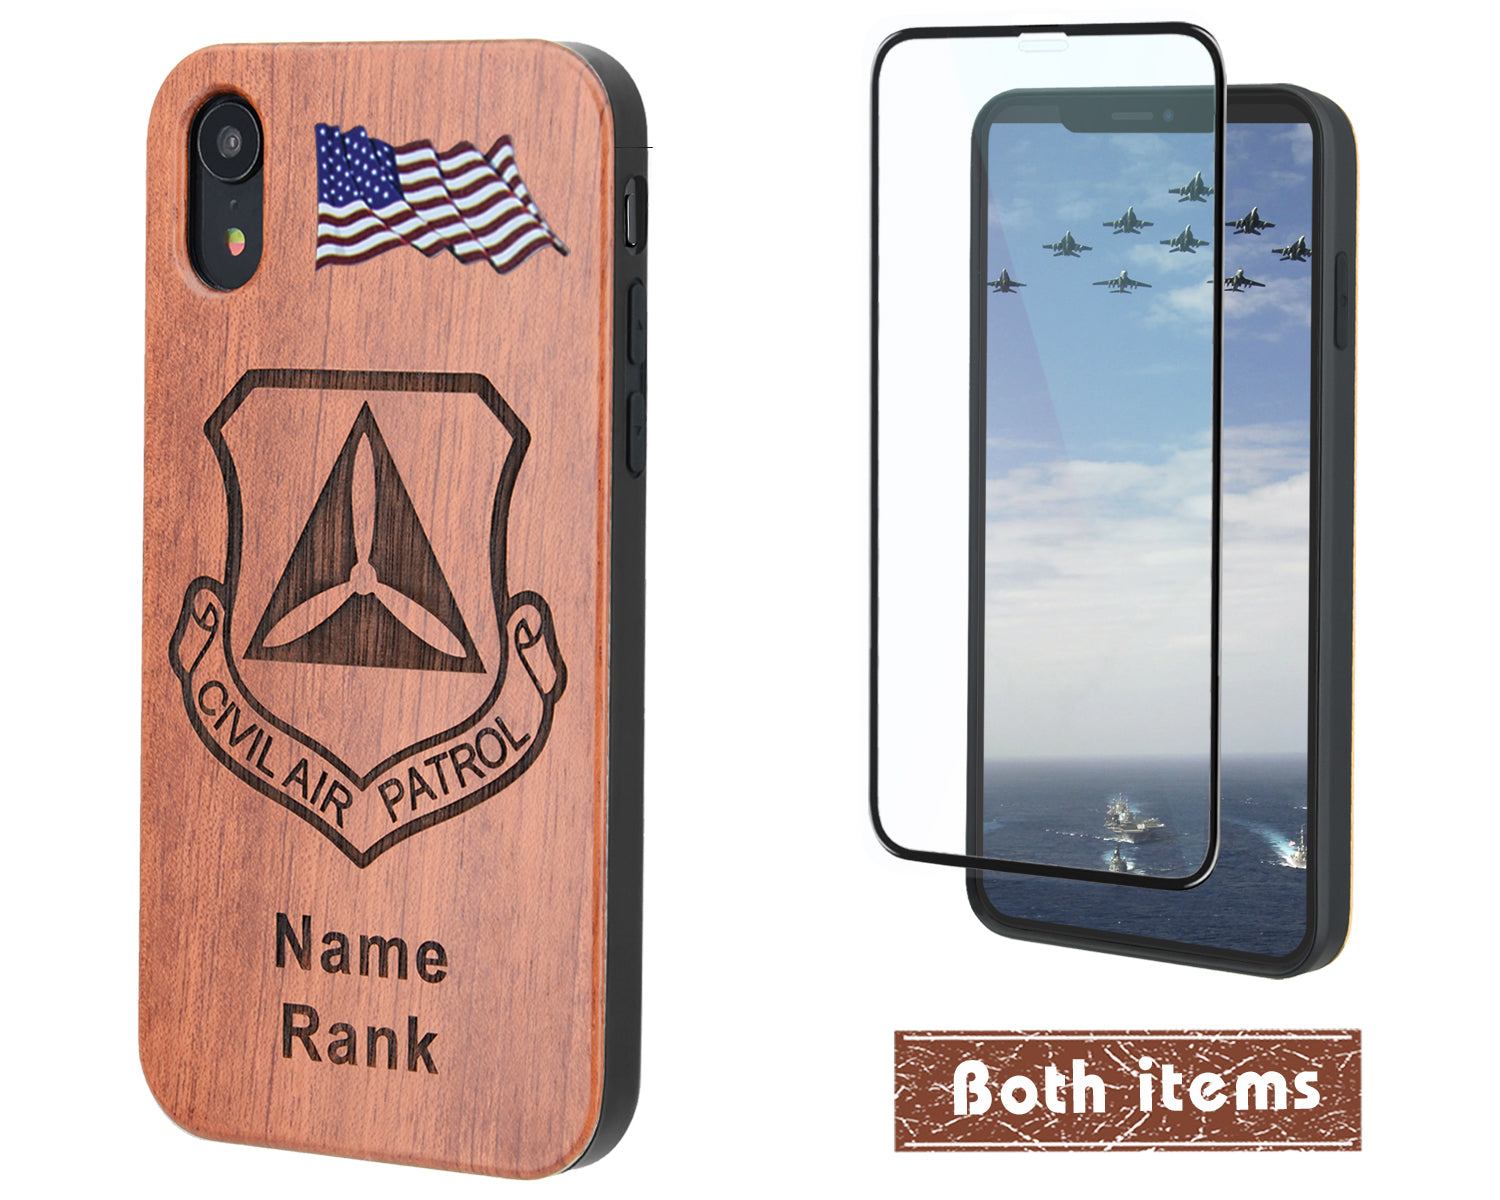 U.S. Civil Air Patrol Wood Phone Case with Name/Rank for iPhone and Galaxy - iProductsUS